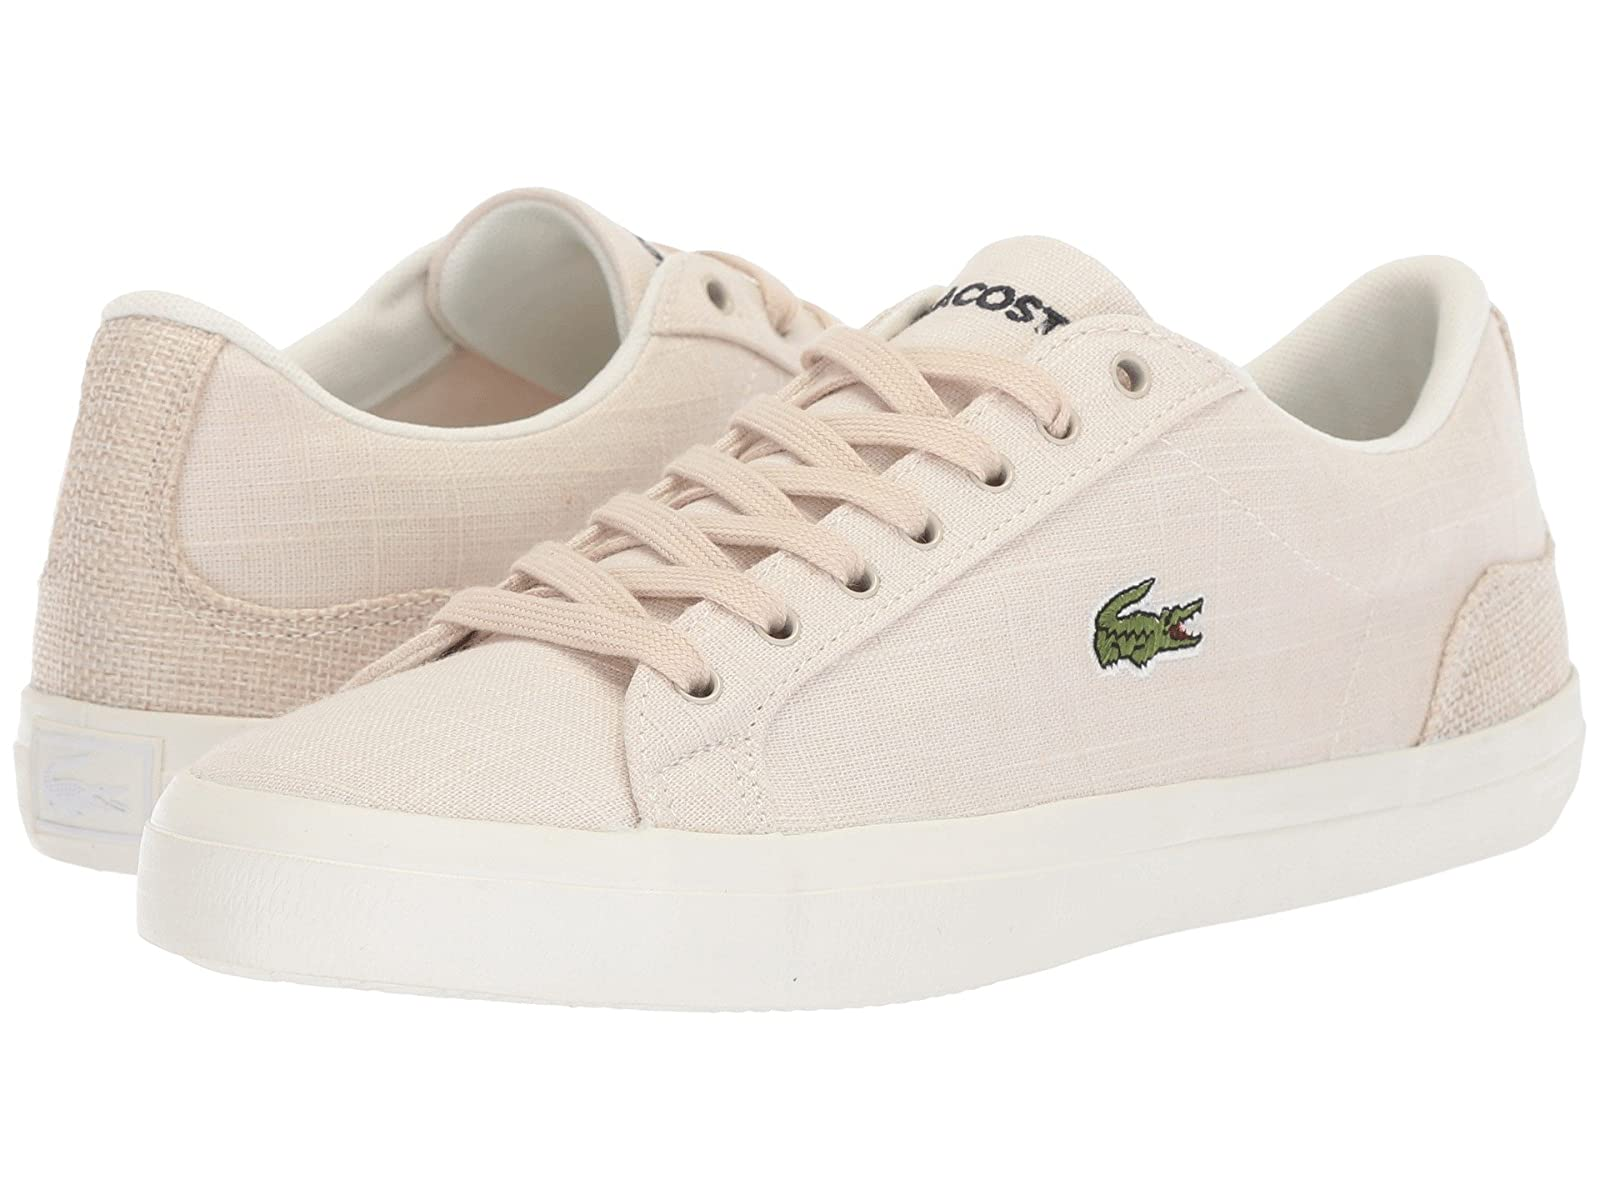 Lacoste Lerond 218 1Atmospheric grades have affordable shoes